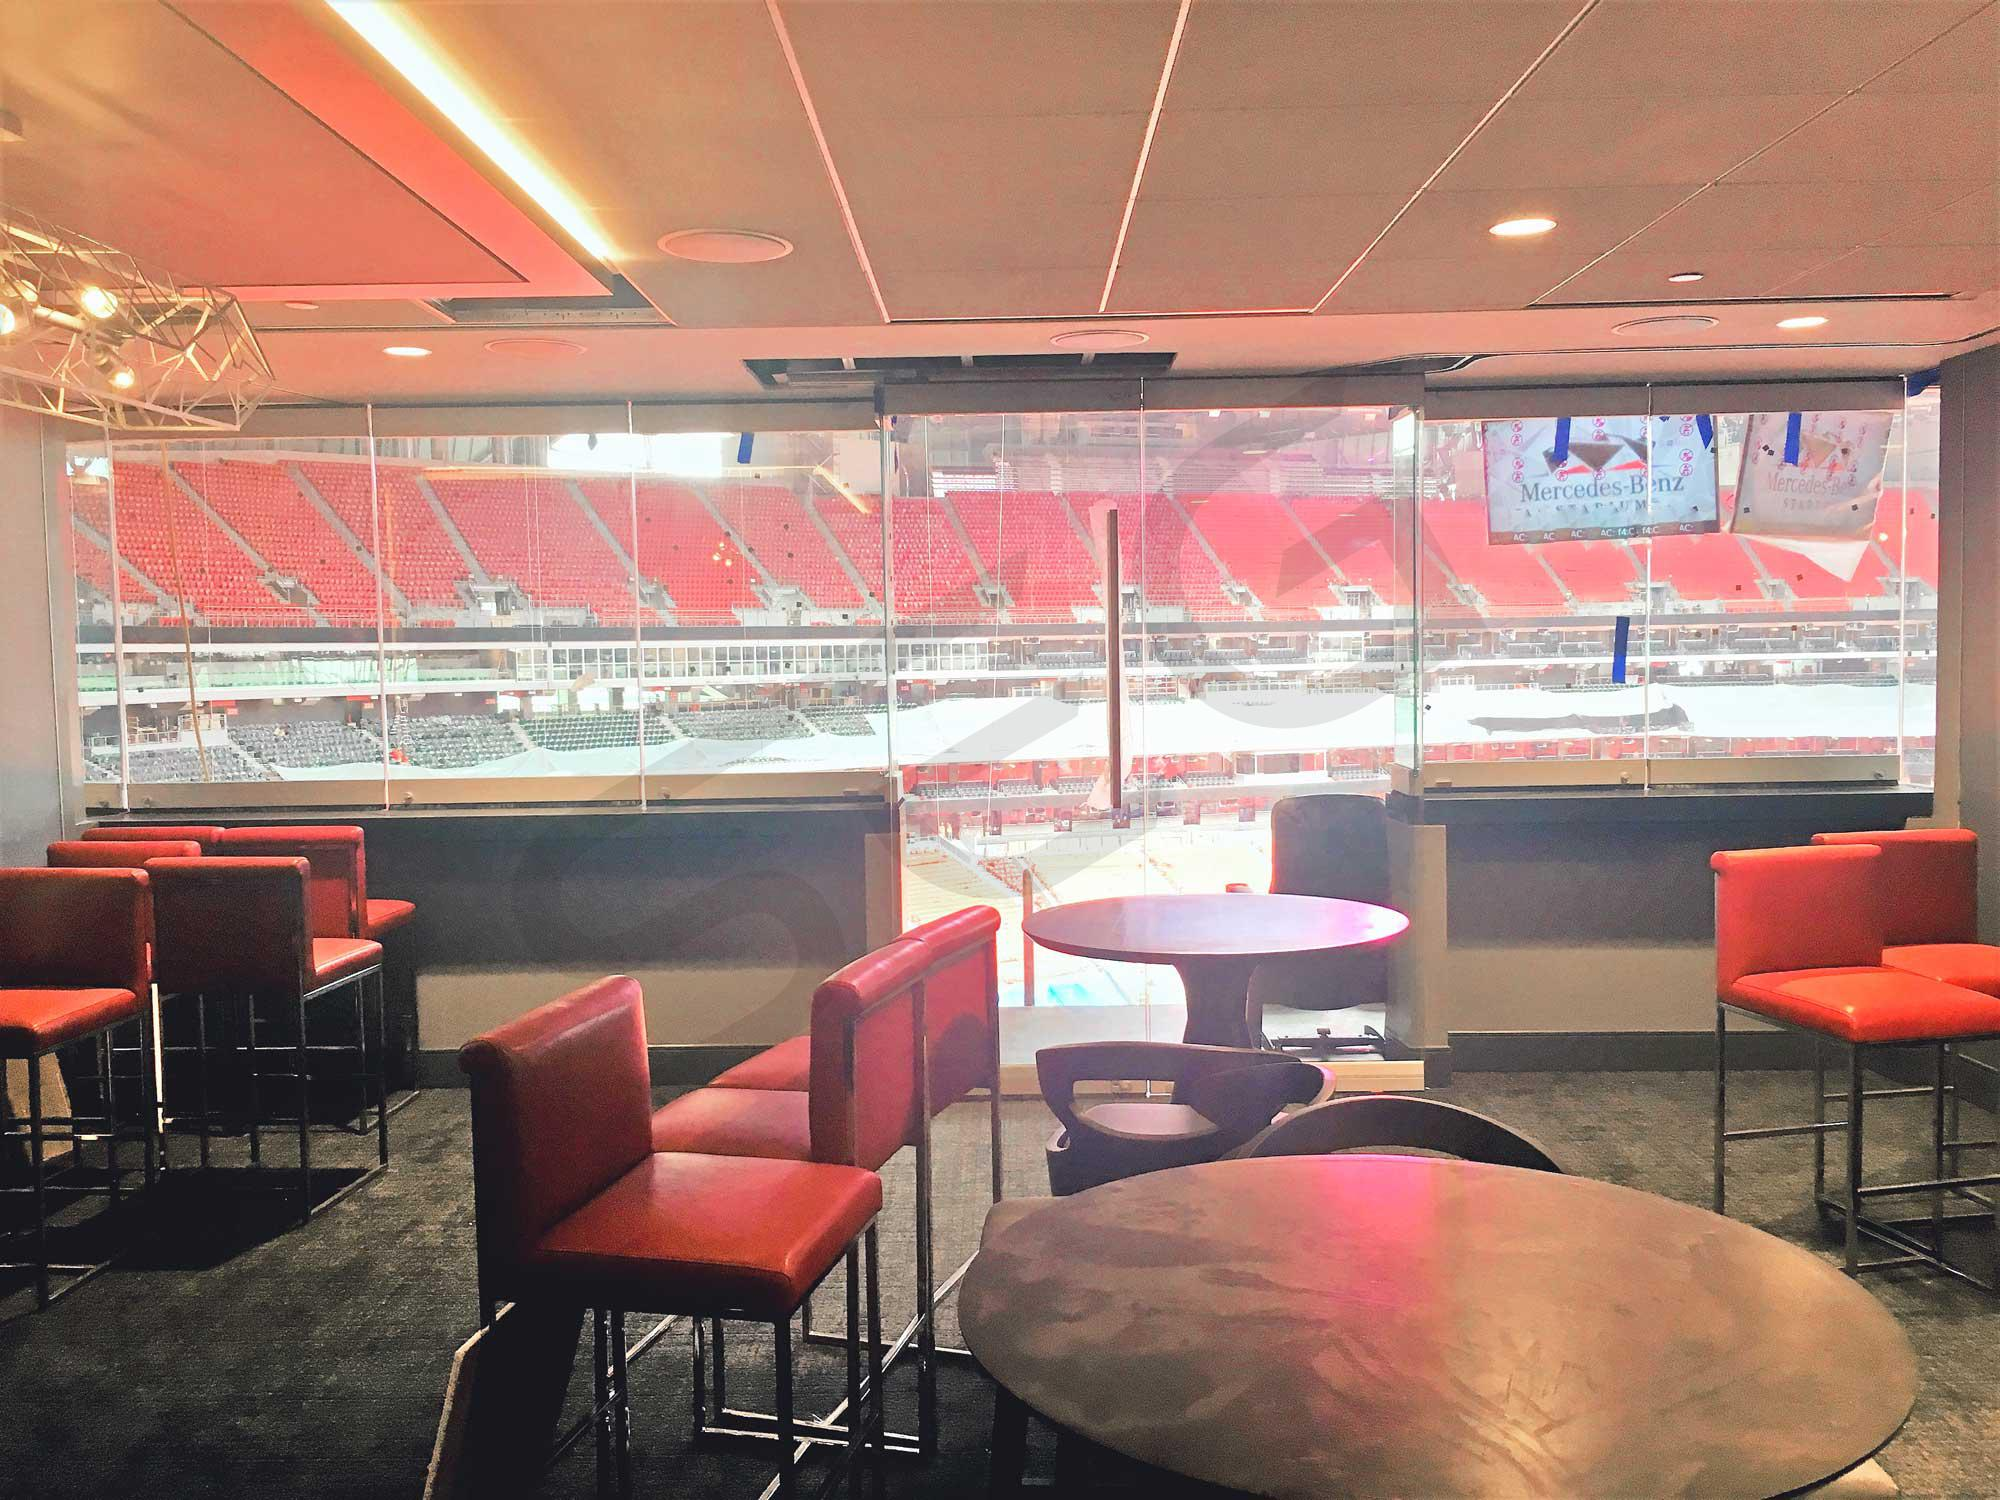 Atlanta falcons suite rentals mercedes benz stadium for Will call mercedes benz stadium